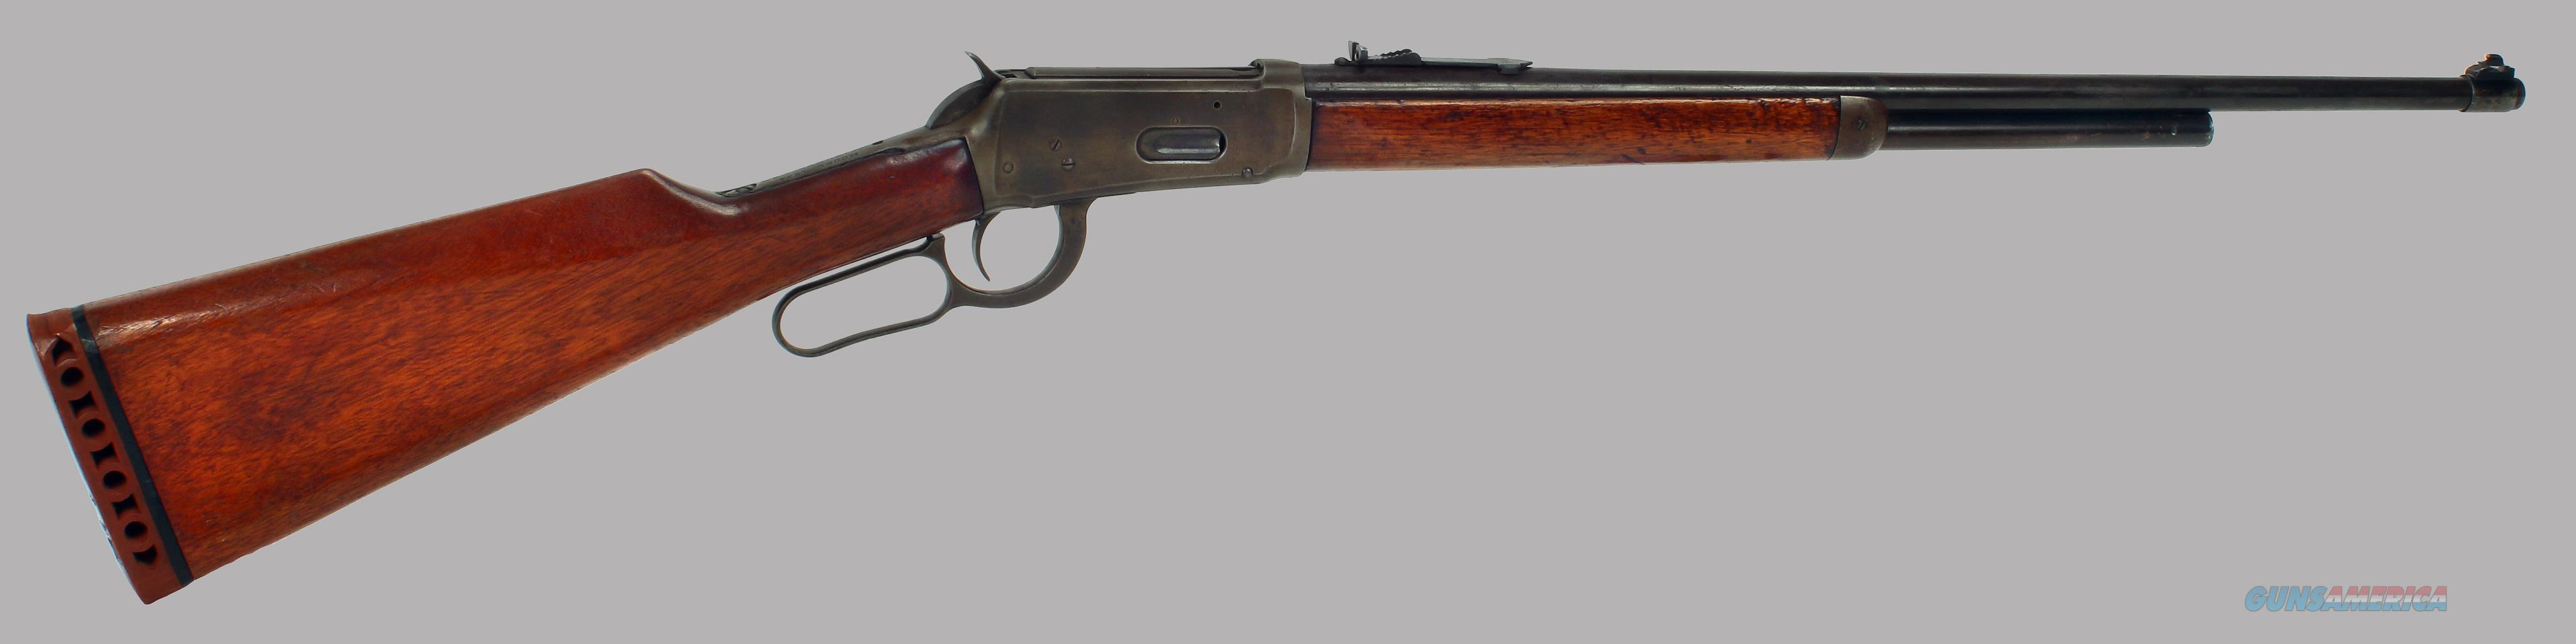 Winchester 30-30 Lever Action 1894 Rifle  Guns > Rifles > Winchester Rifles - Modern Lever > Model 94 > Pre-64